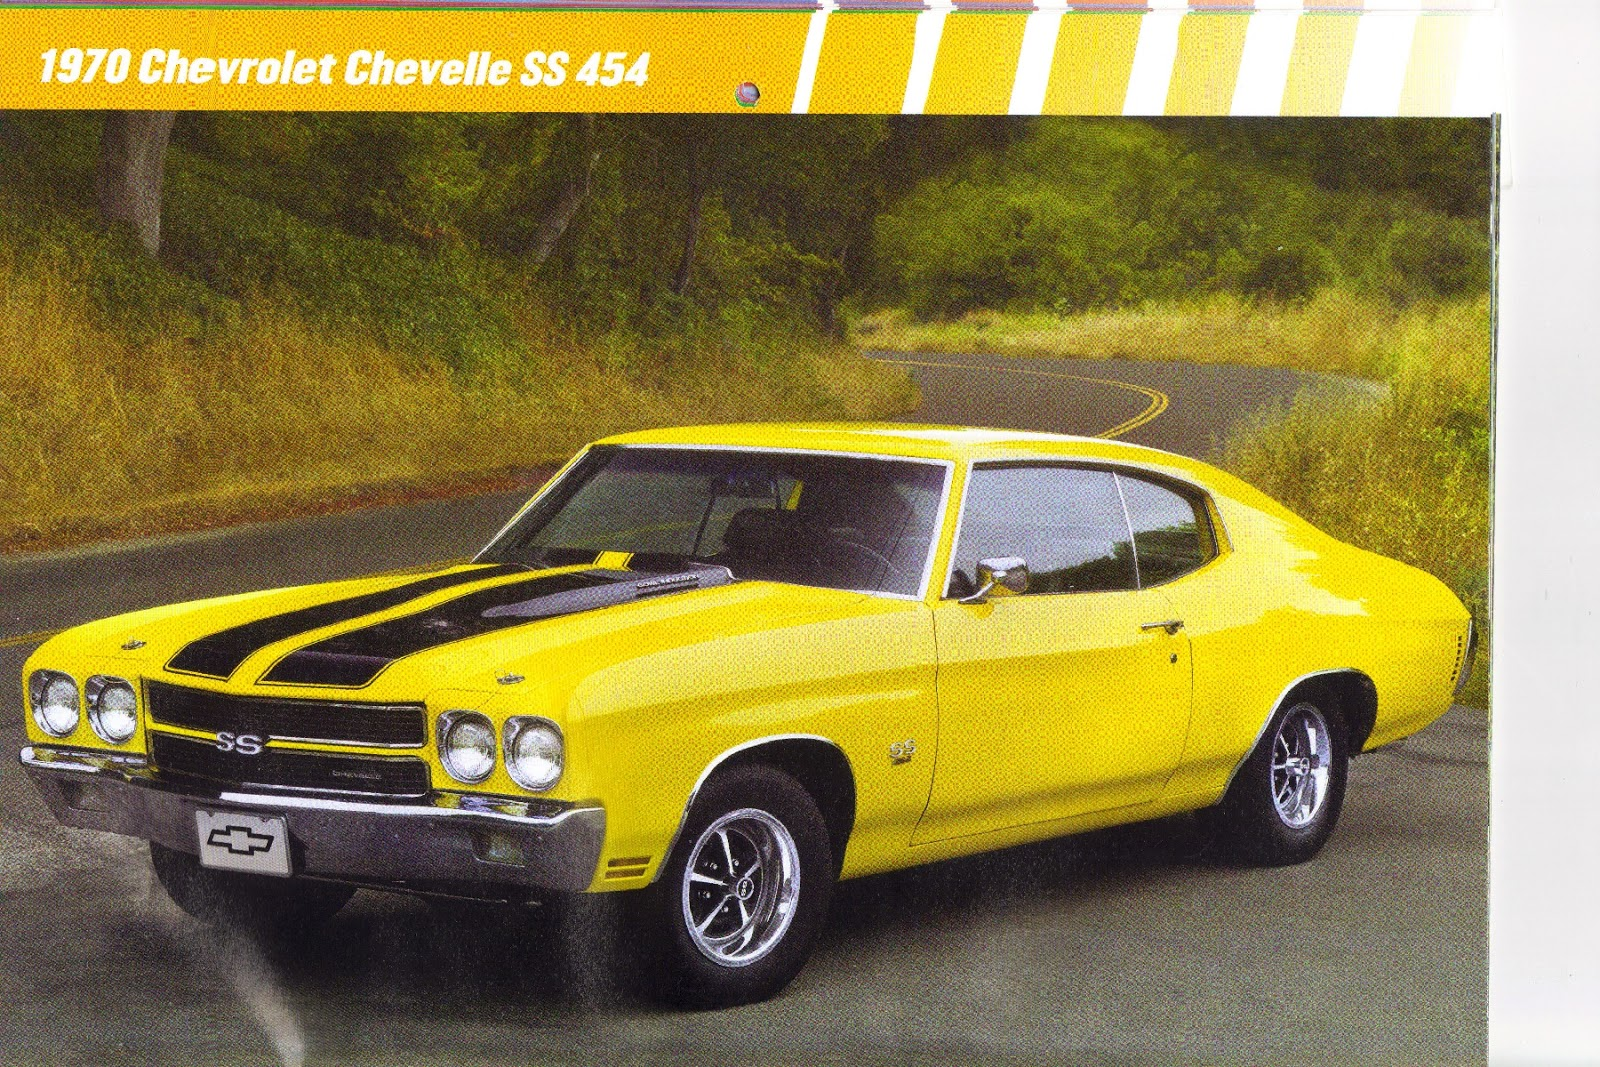 Georgia Boy\'s Old Car Museum: 1970 Chevrolet Chevelle SS 454